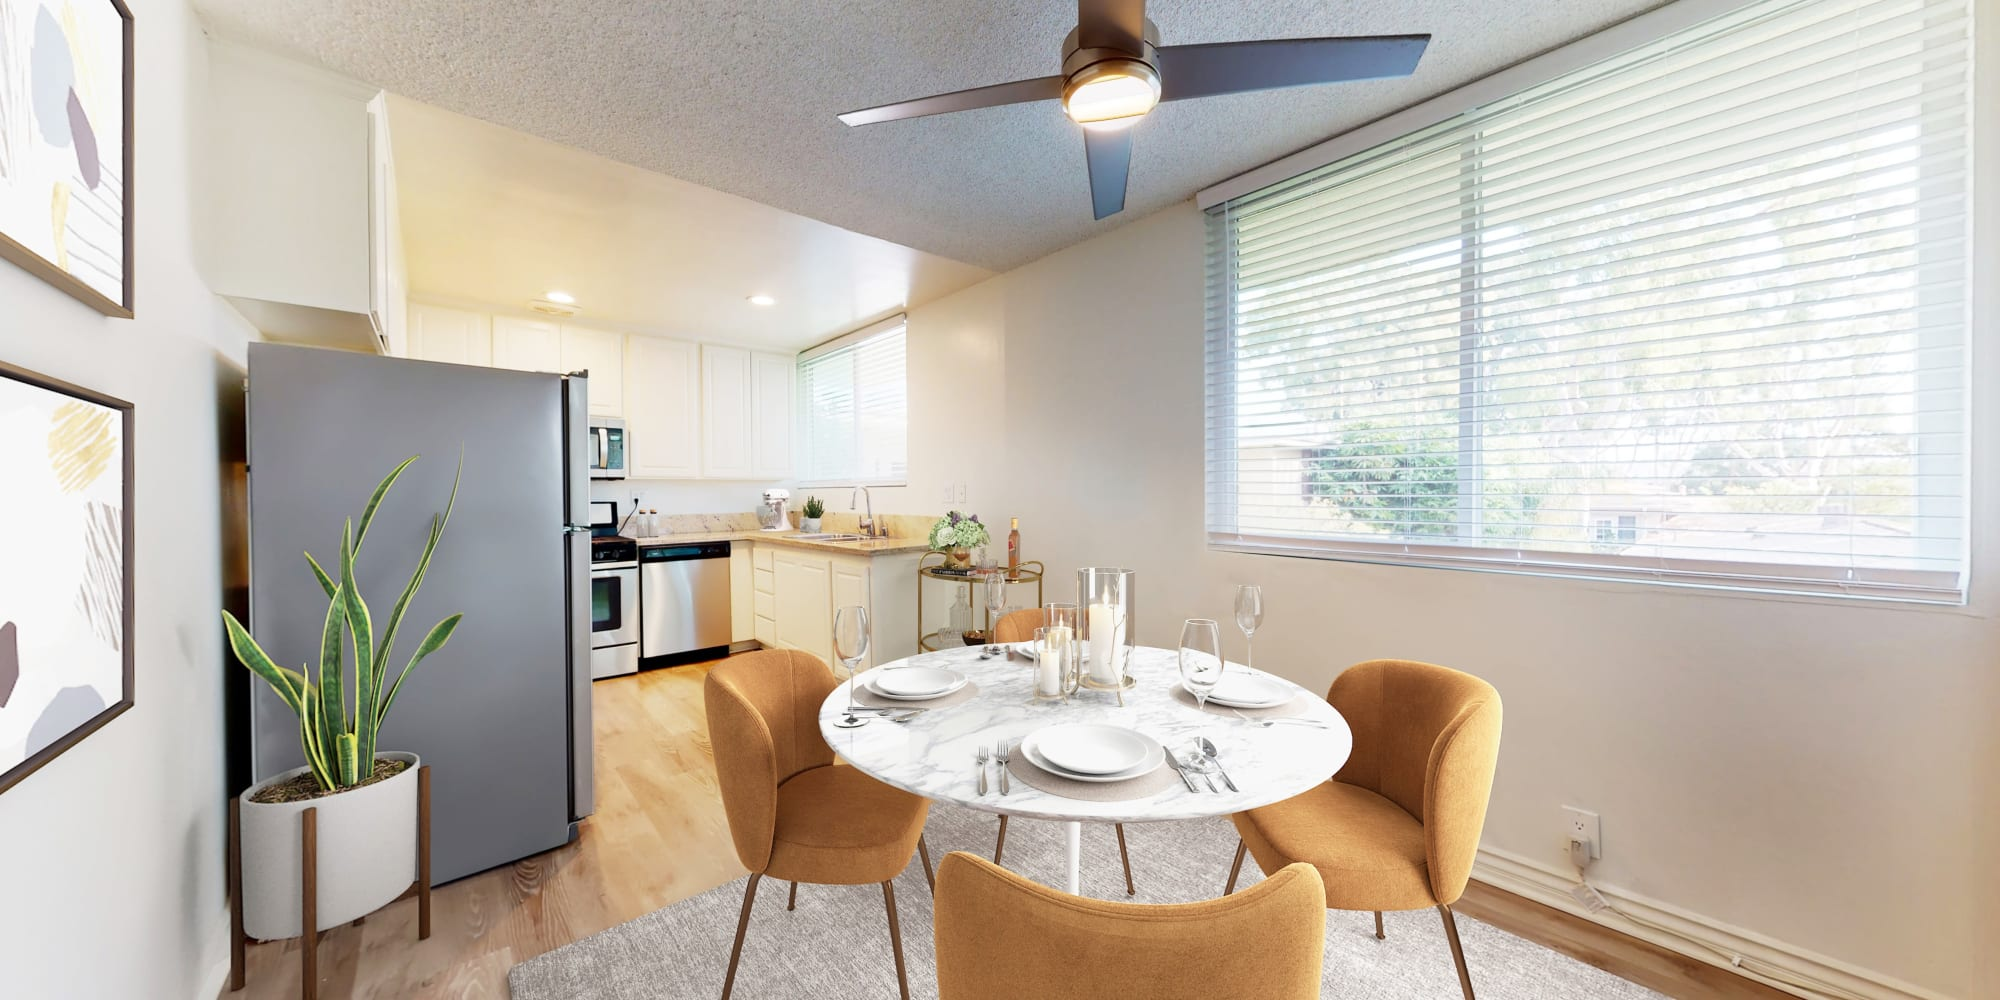 Dining room and kitchen in a two-bedroom apartment home at Sunset Barrington Gardens in Los Angeles, California